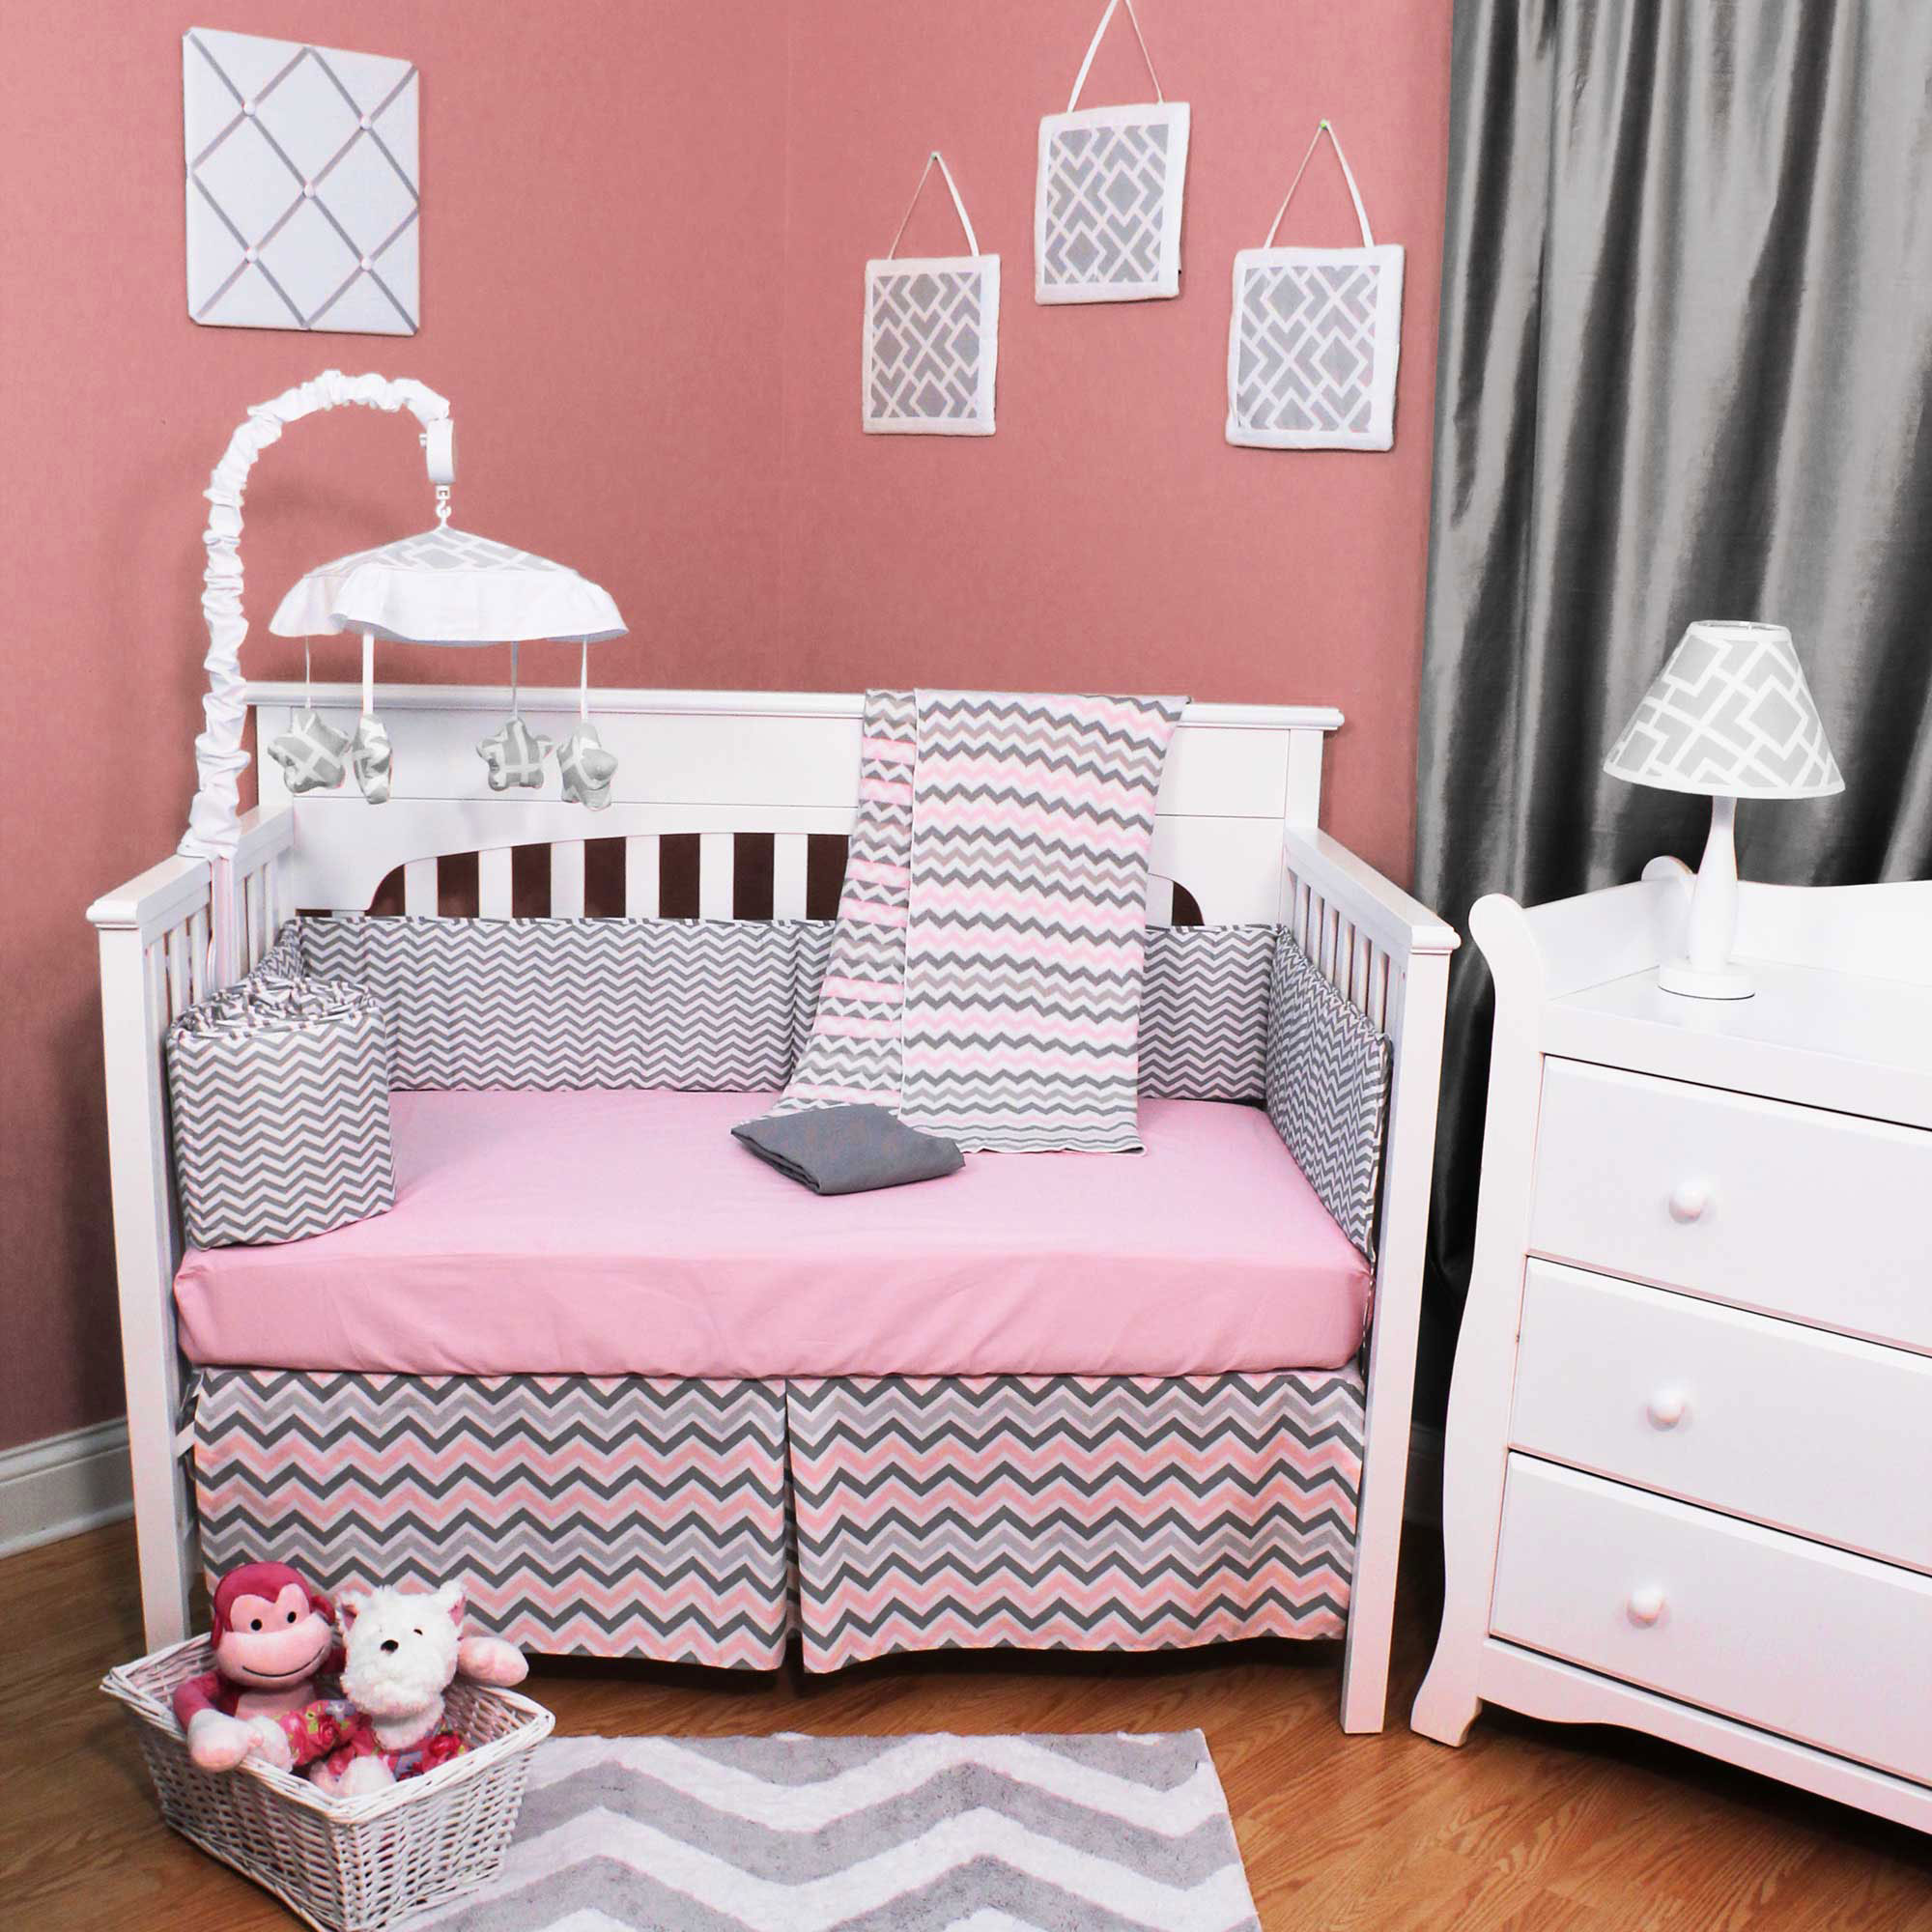 American Baby Company Crib Bedding Set - Pink and Gray Chevron - Zig Zag 5 Piece Baby Bedding Set